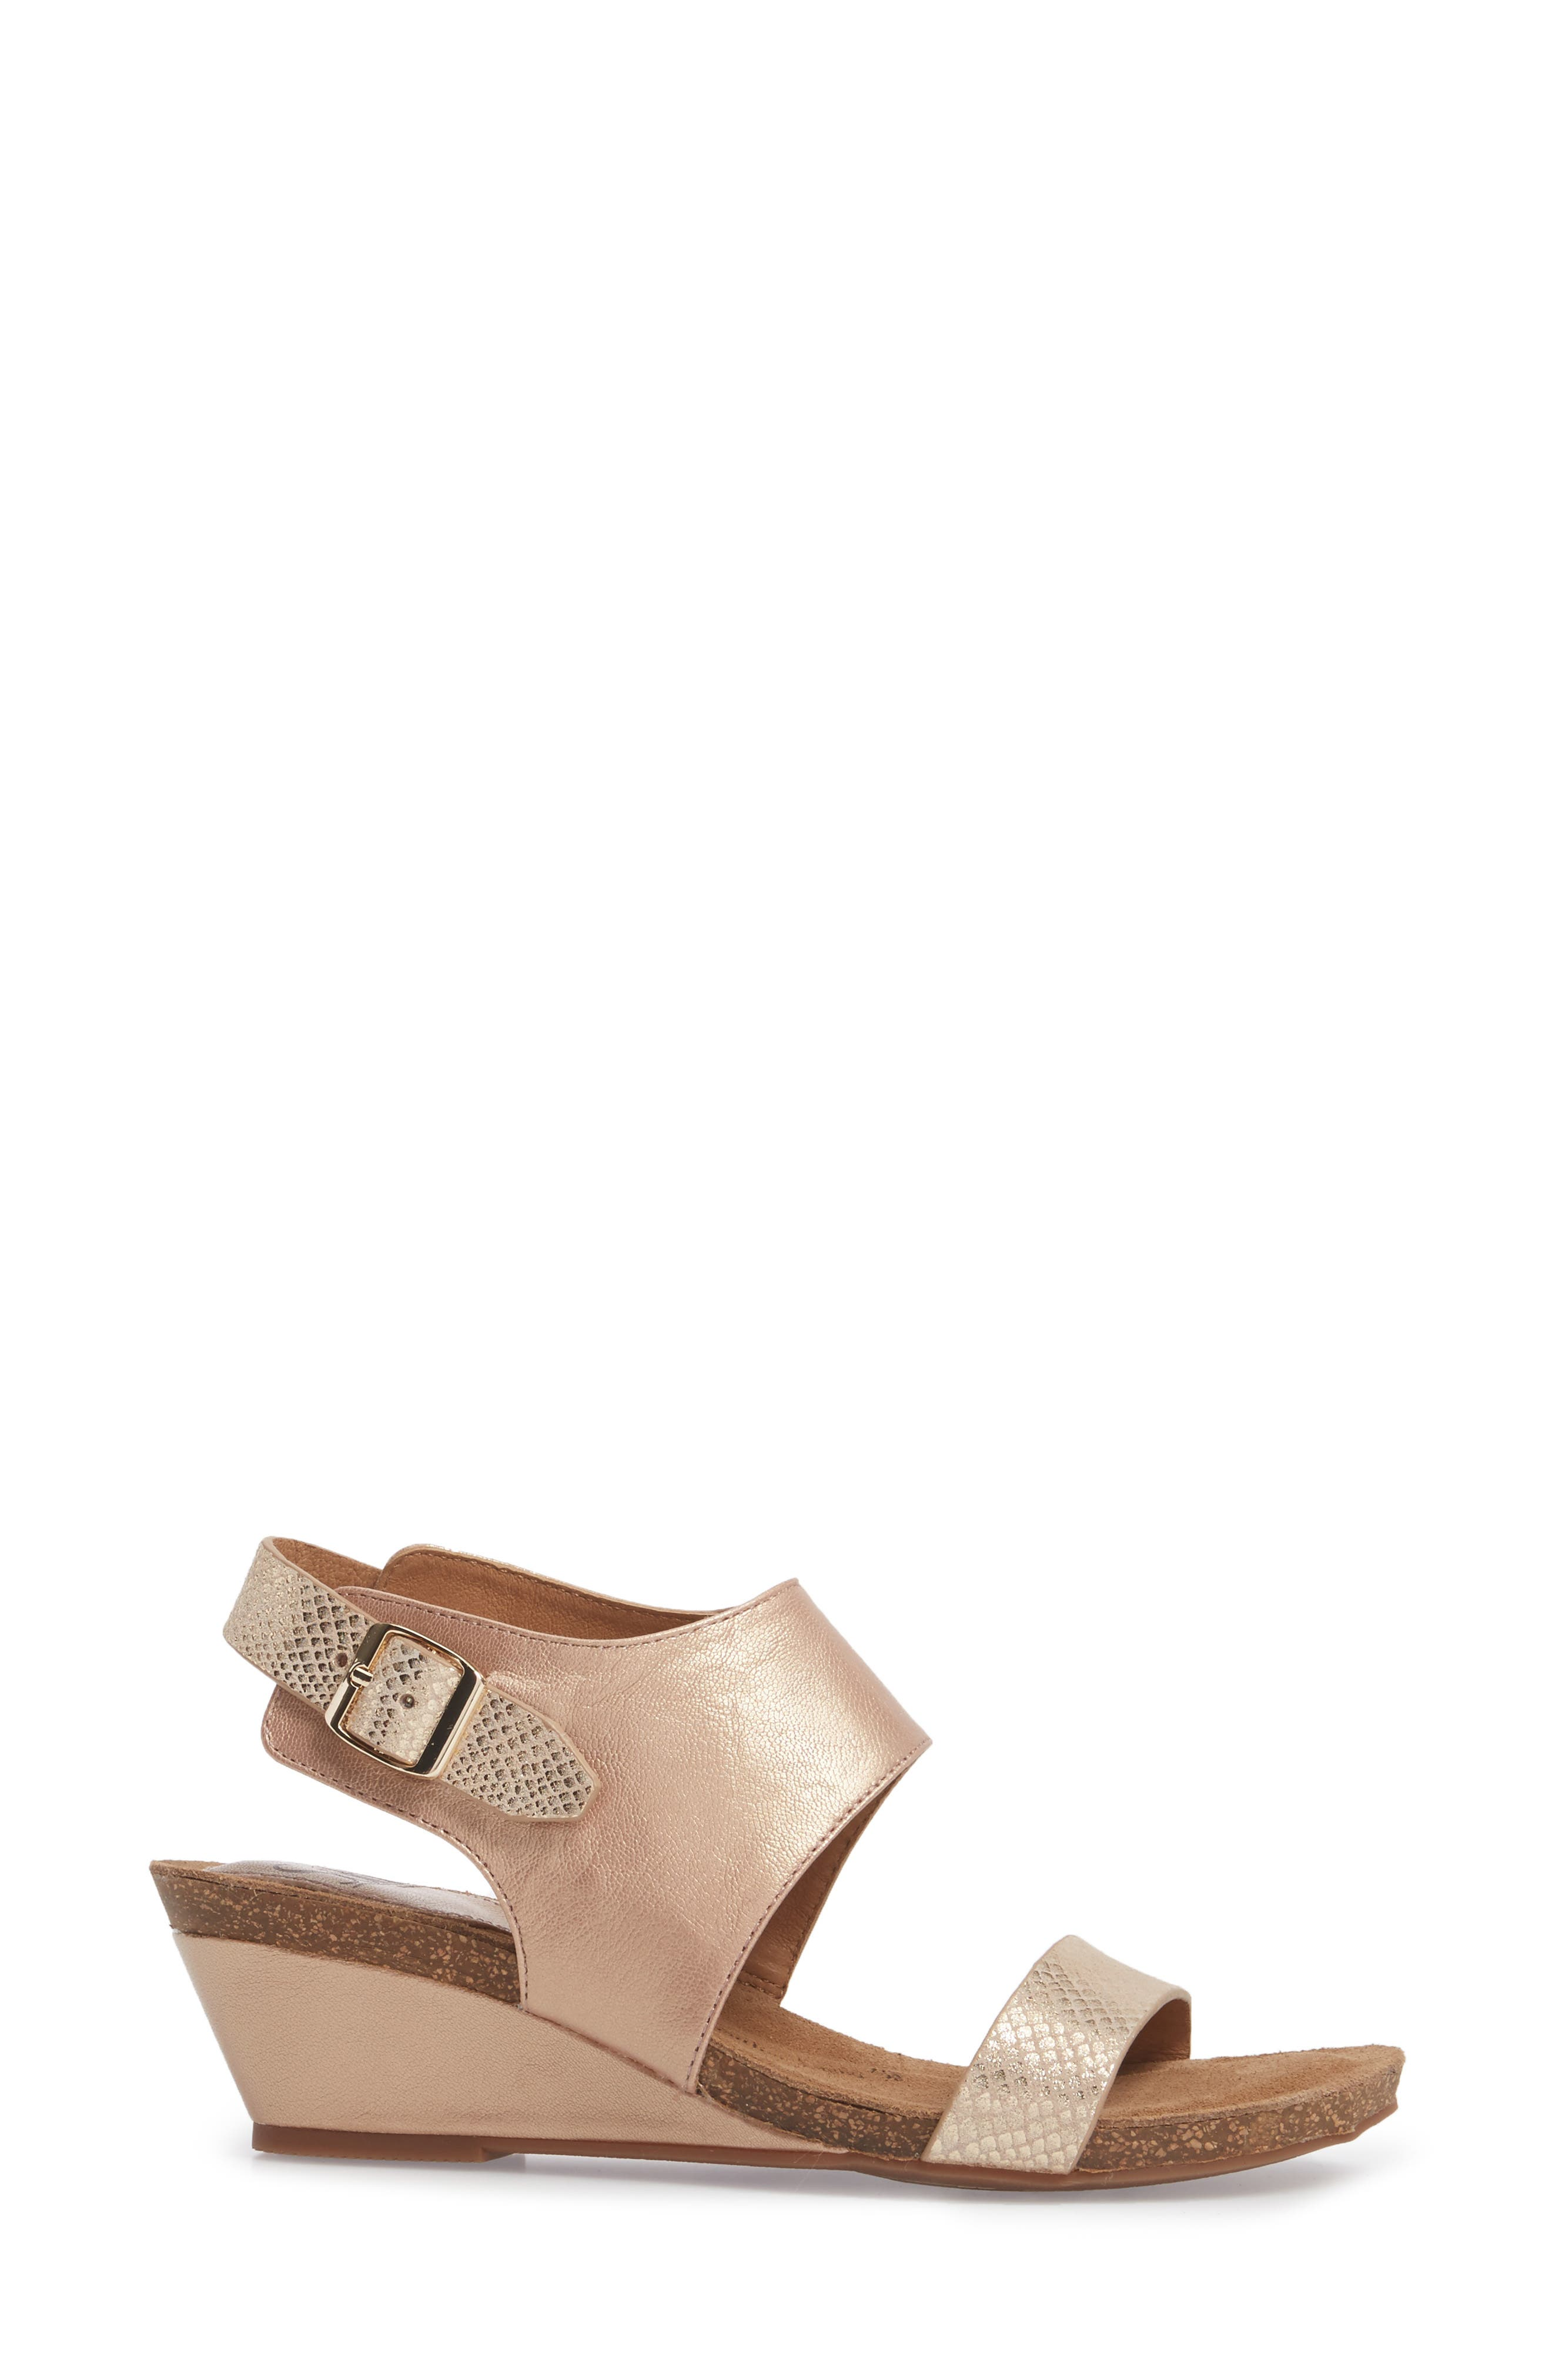 'Vanita' Leather Sandal,                             Alternate thumbnail 3, color,                             CHAMPAGNE/ GOLD LEATHER